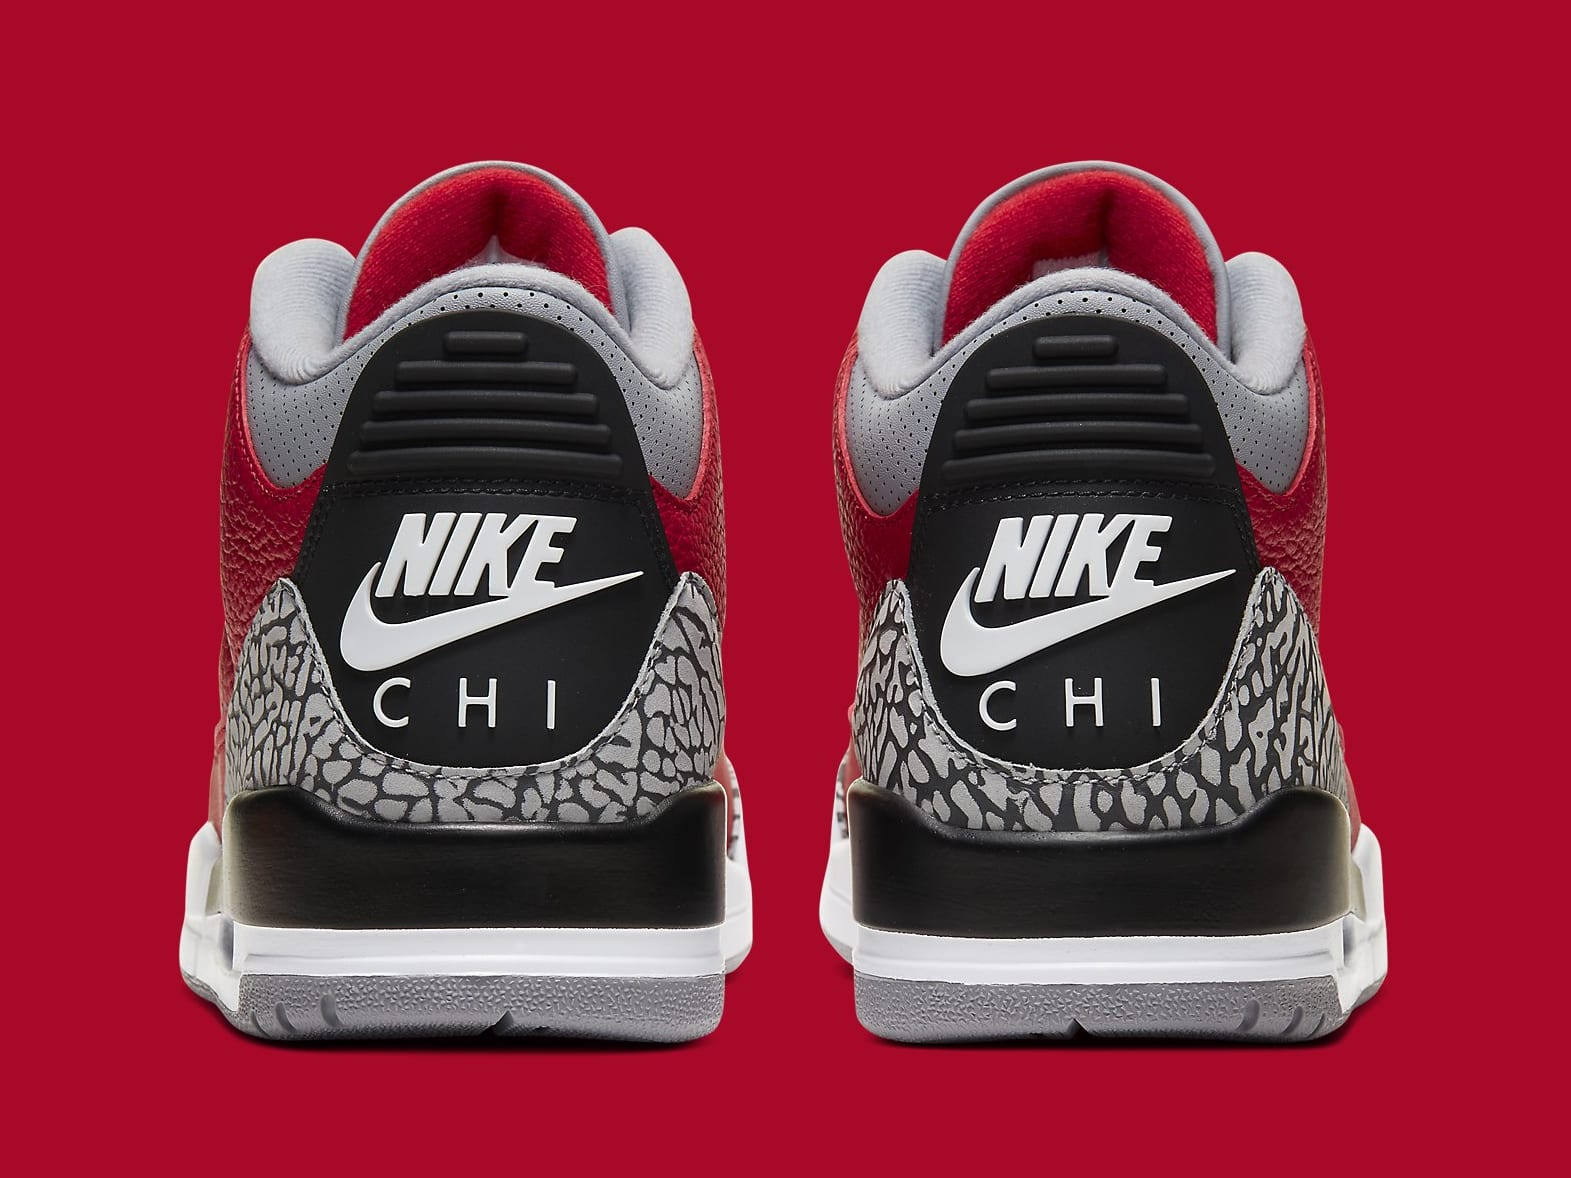 Air Jordan 3 CHI Exclusive Release Date CU2277-600 Heel